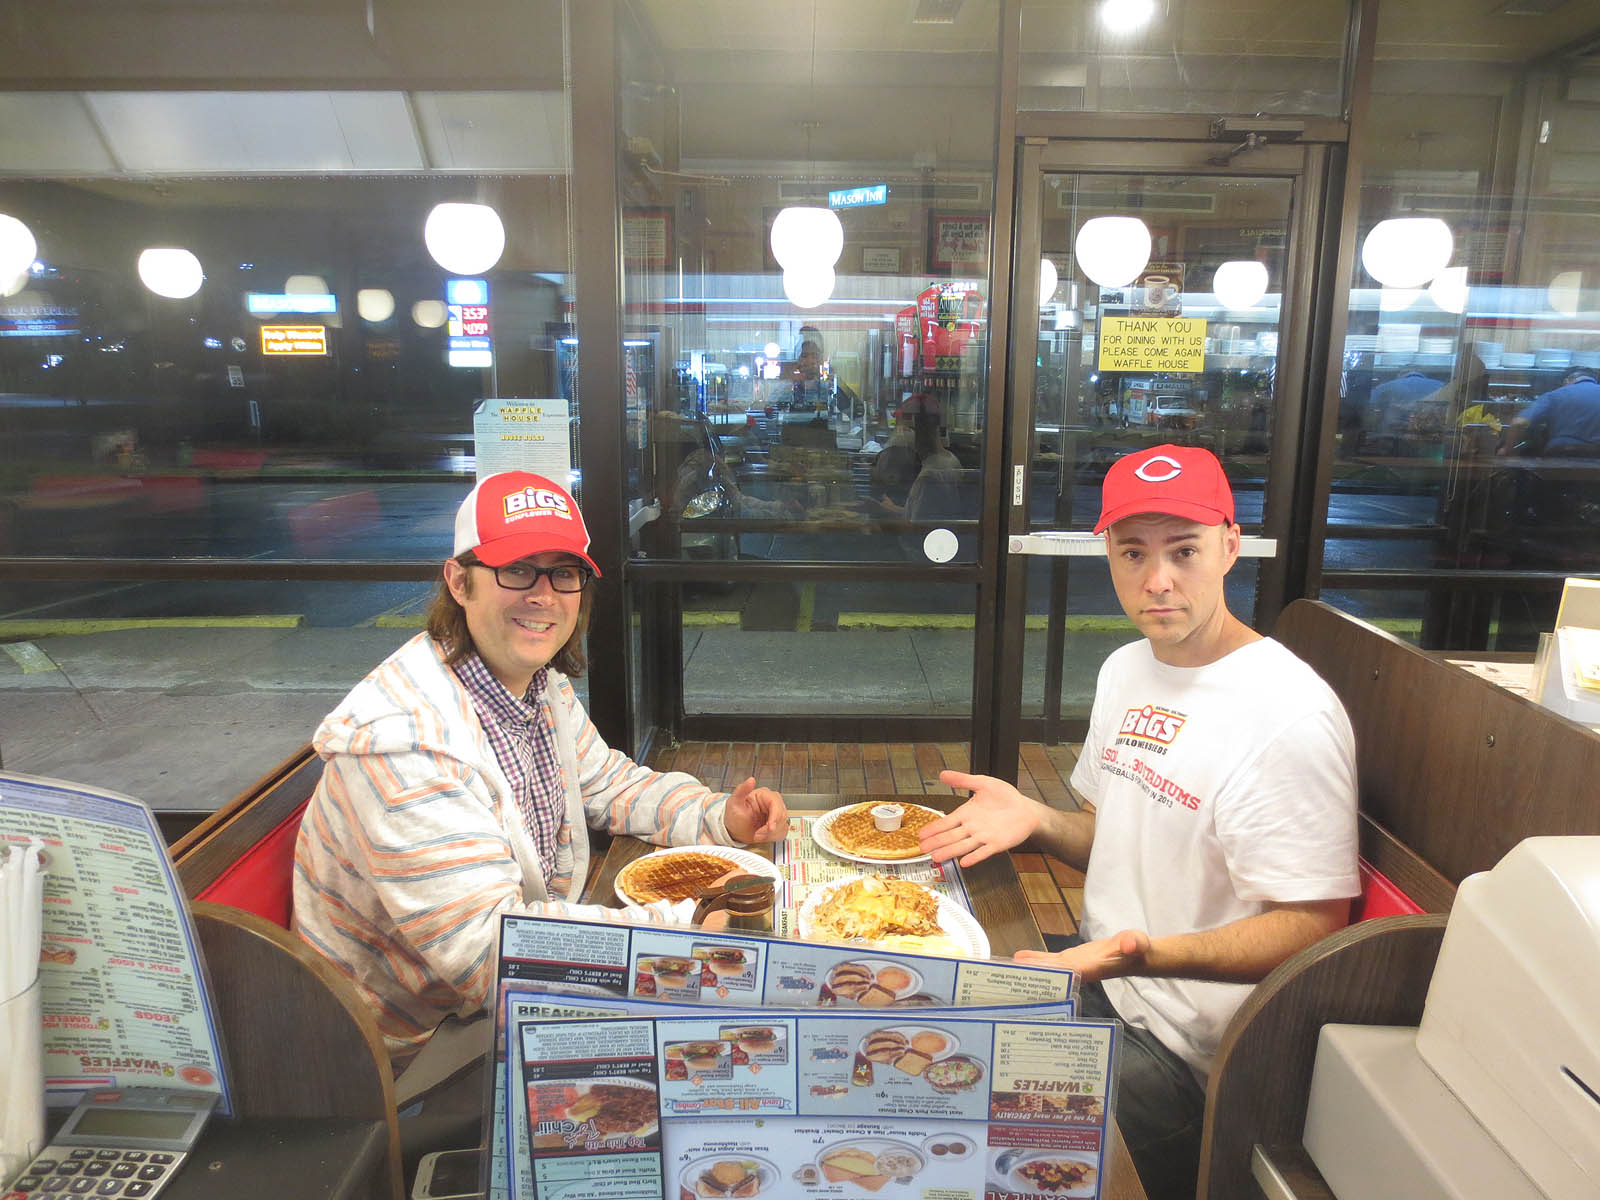 5 6 13 at great american ball park the baseball collector for Waffle house classic jukebox favorites